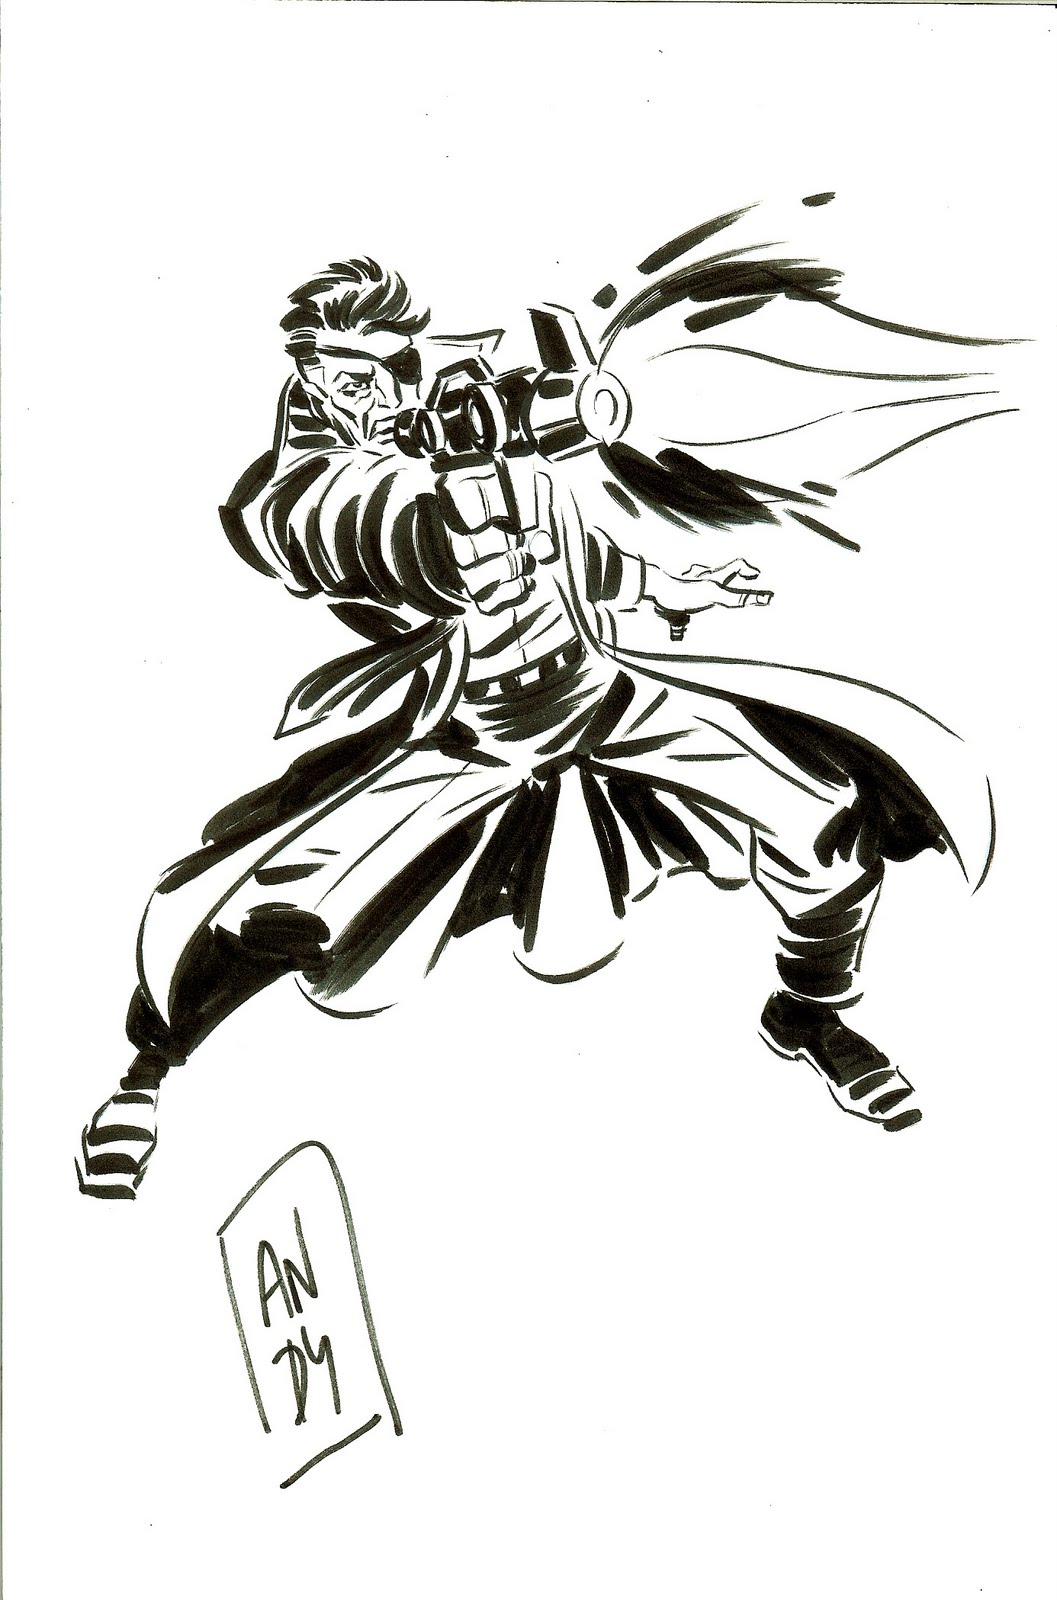 Free Nick Fury From Avengers Coloring Pages: Free Coloring Pages